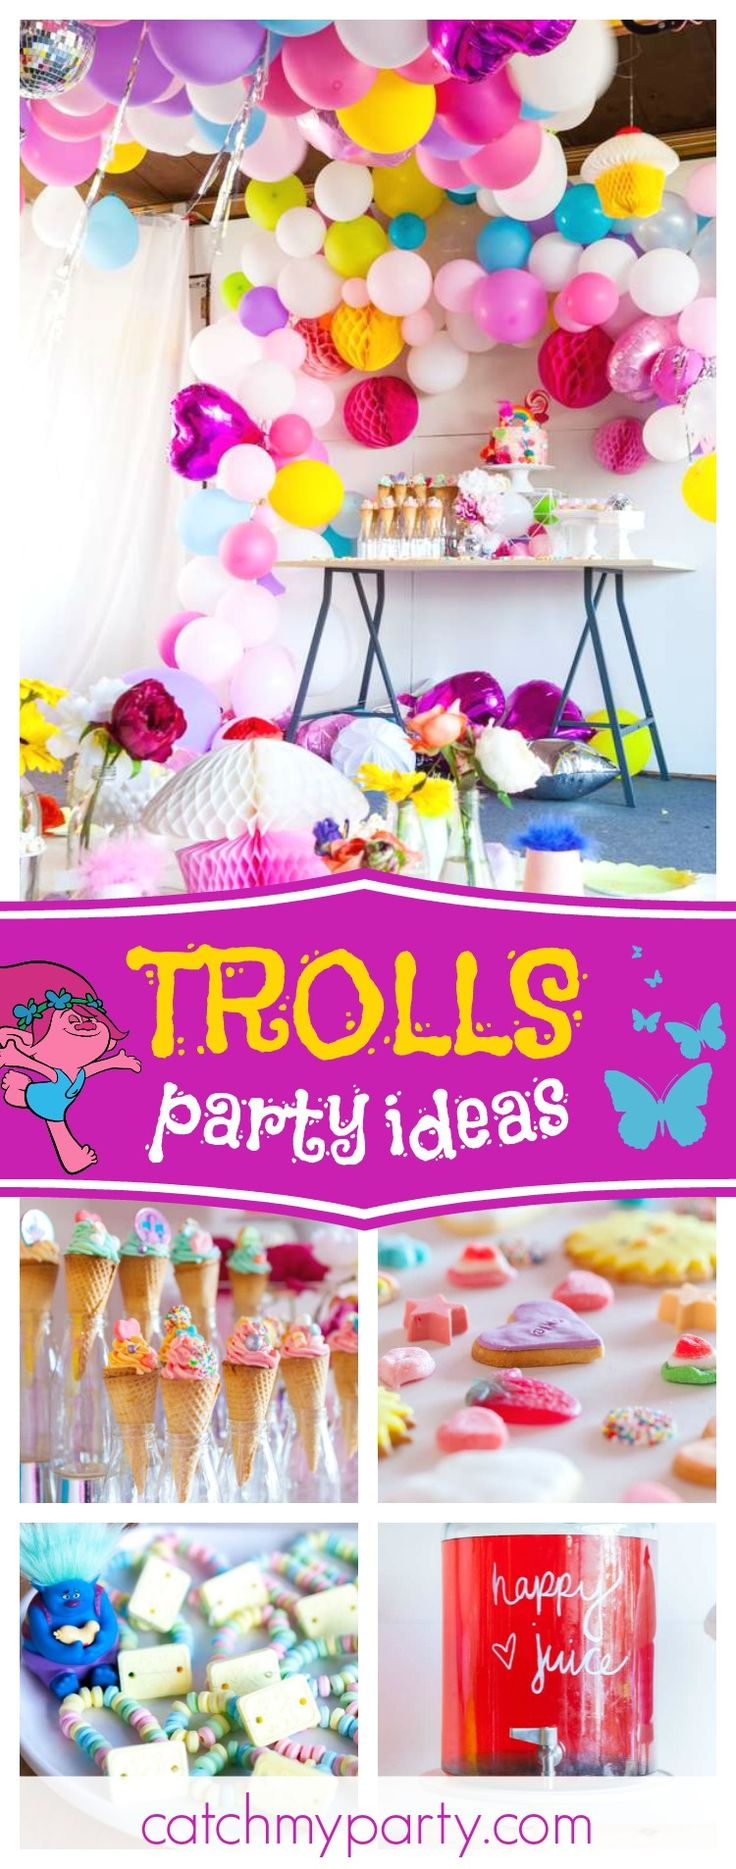 Check out this incredible colorful Trolls birthday party! The balloon decorations are amazing!! See more party ideas and share yours at CatchMyParty.com #partyideas #trolls #girlbirthday